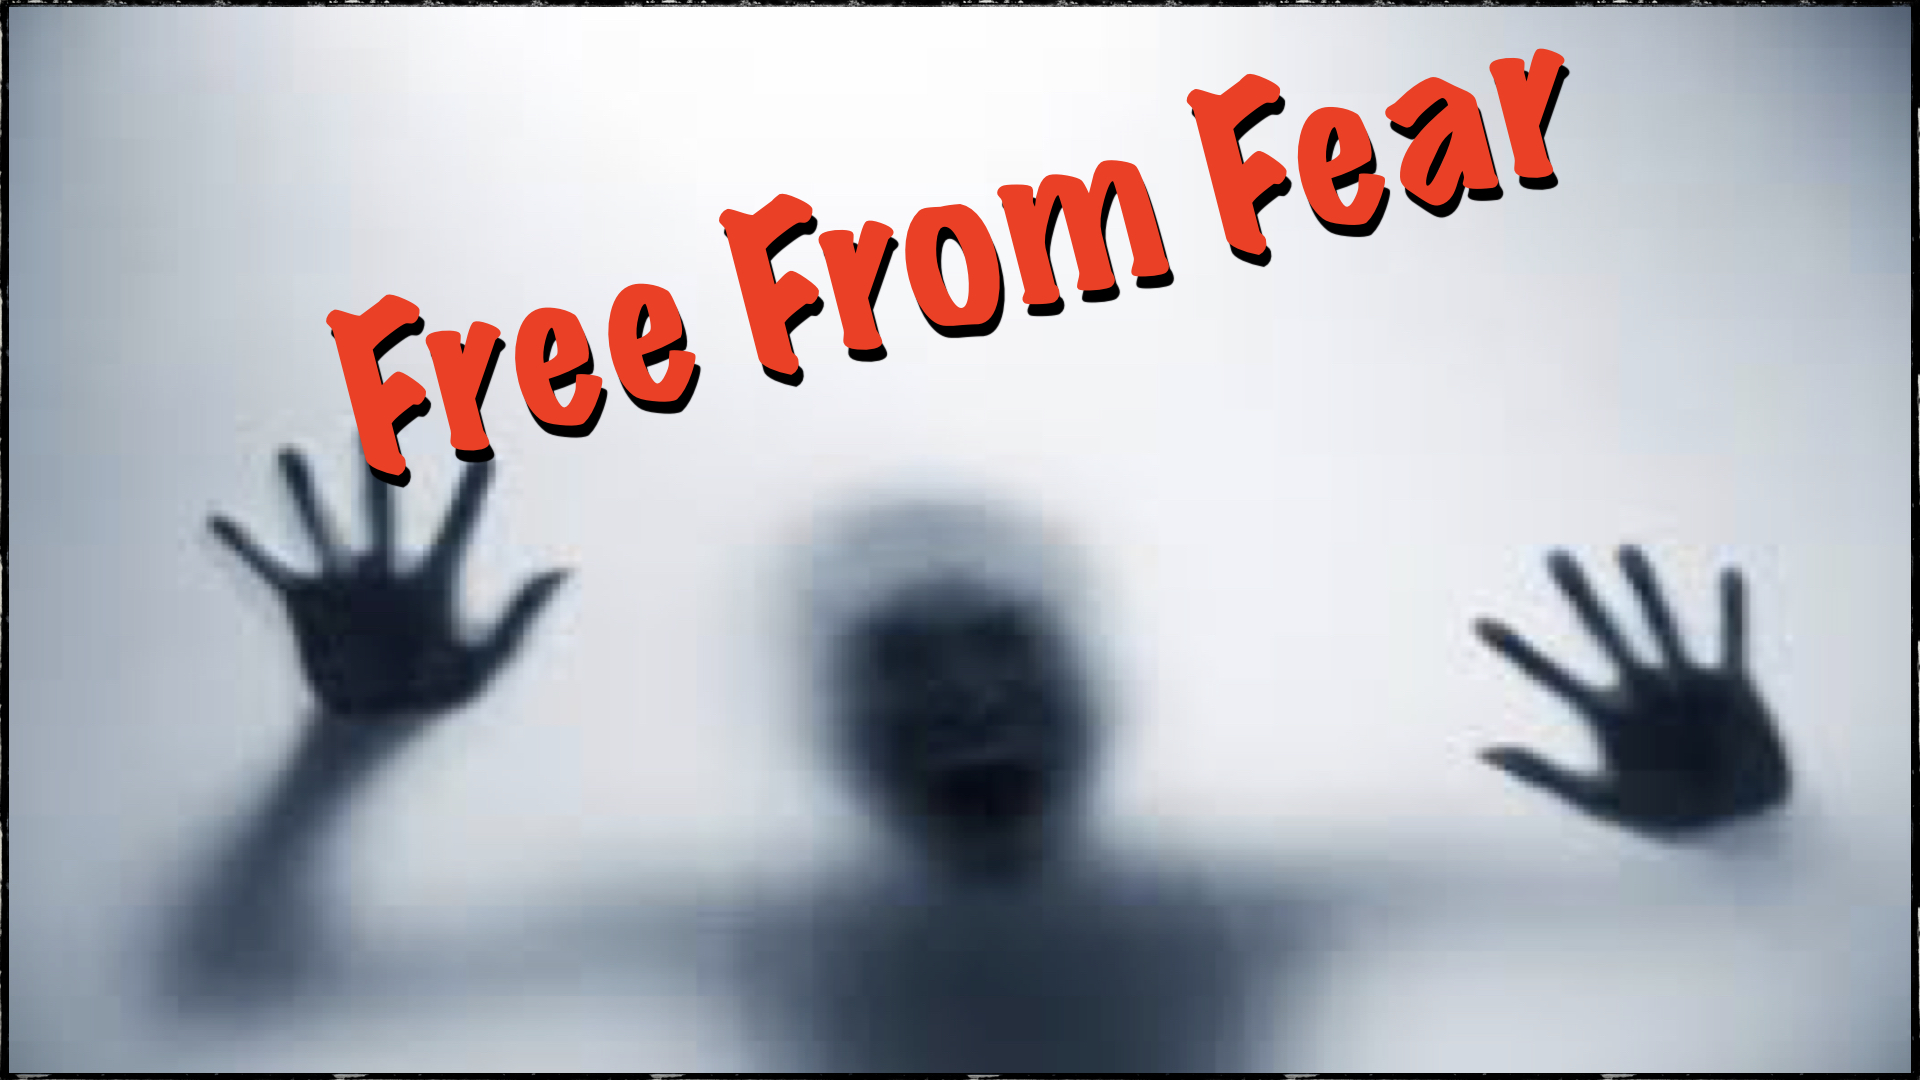 Free From Fear 1312018 45640 PM